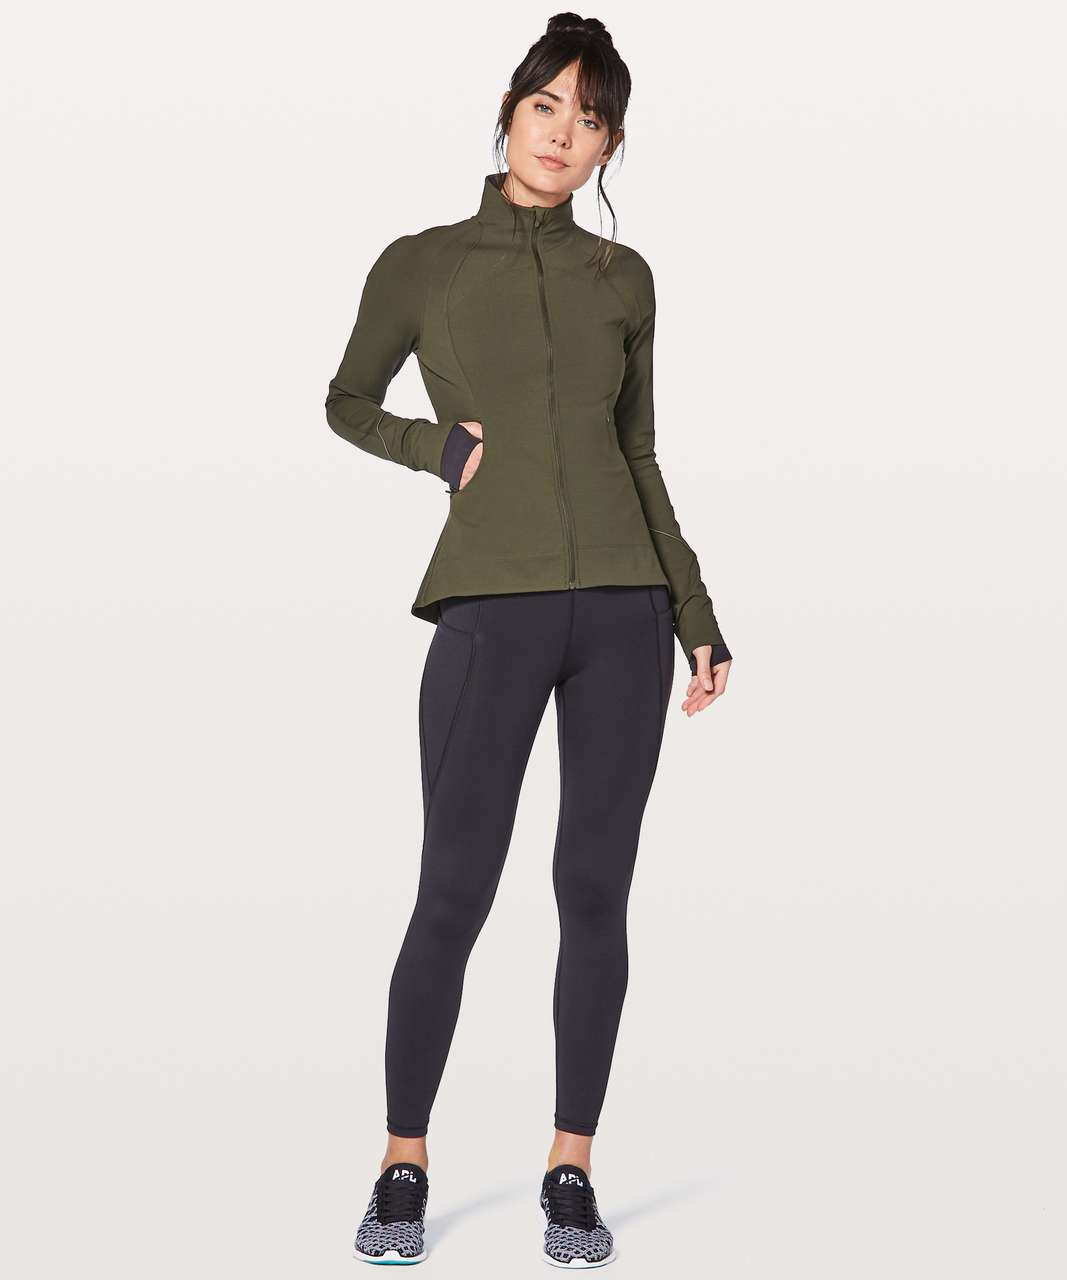 Lululemon Gait Keeper Jacket - Dark Olive